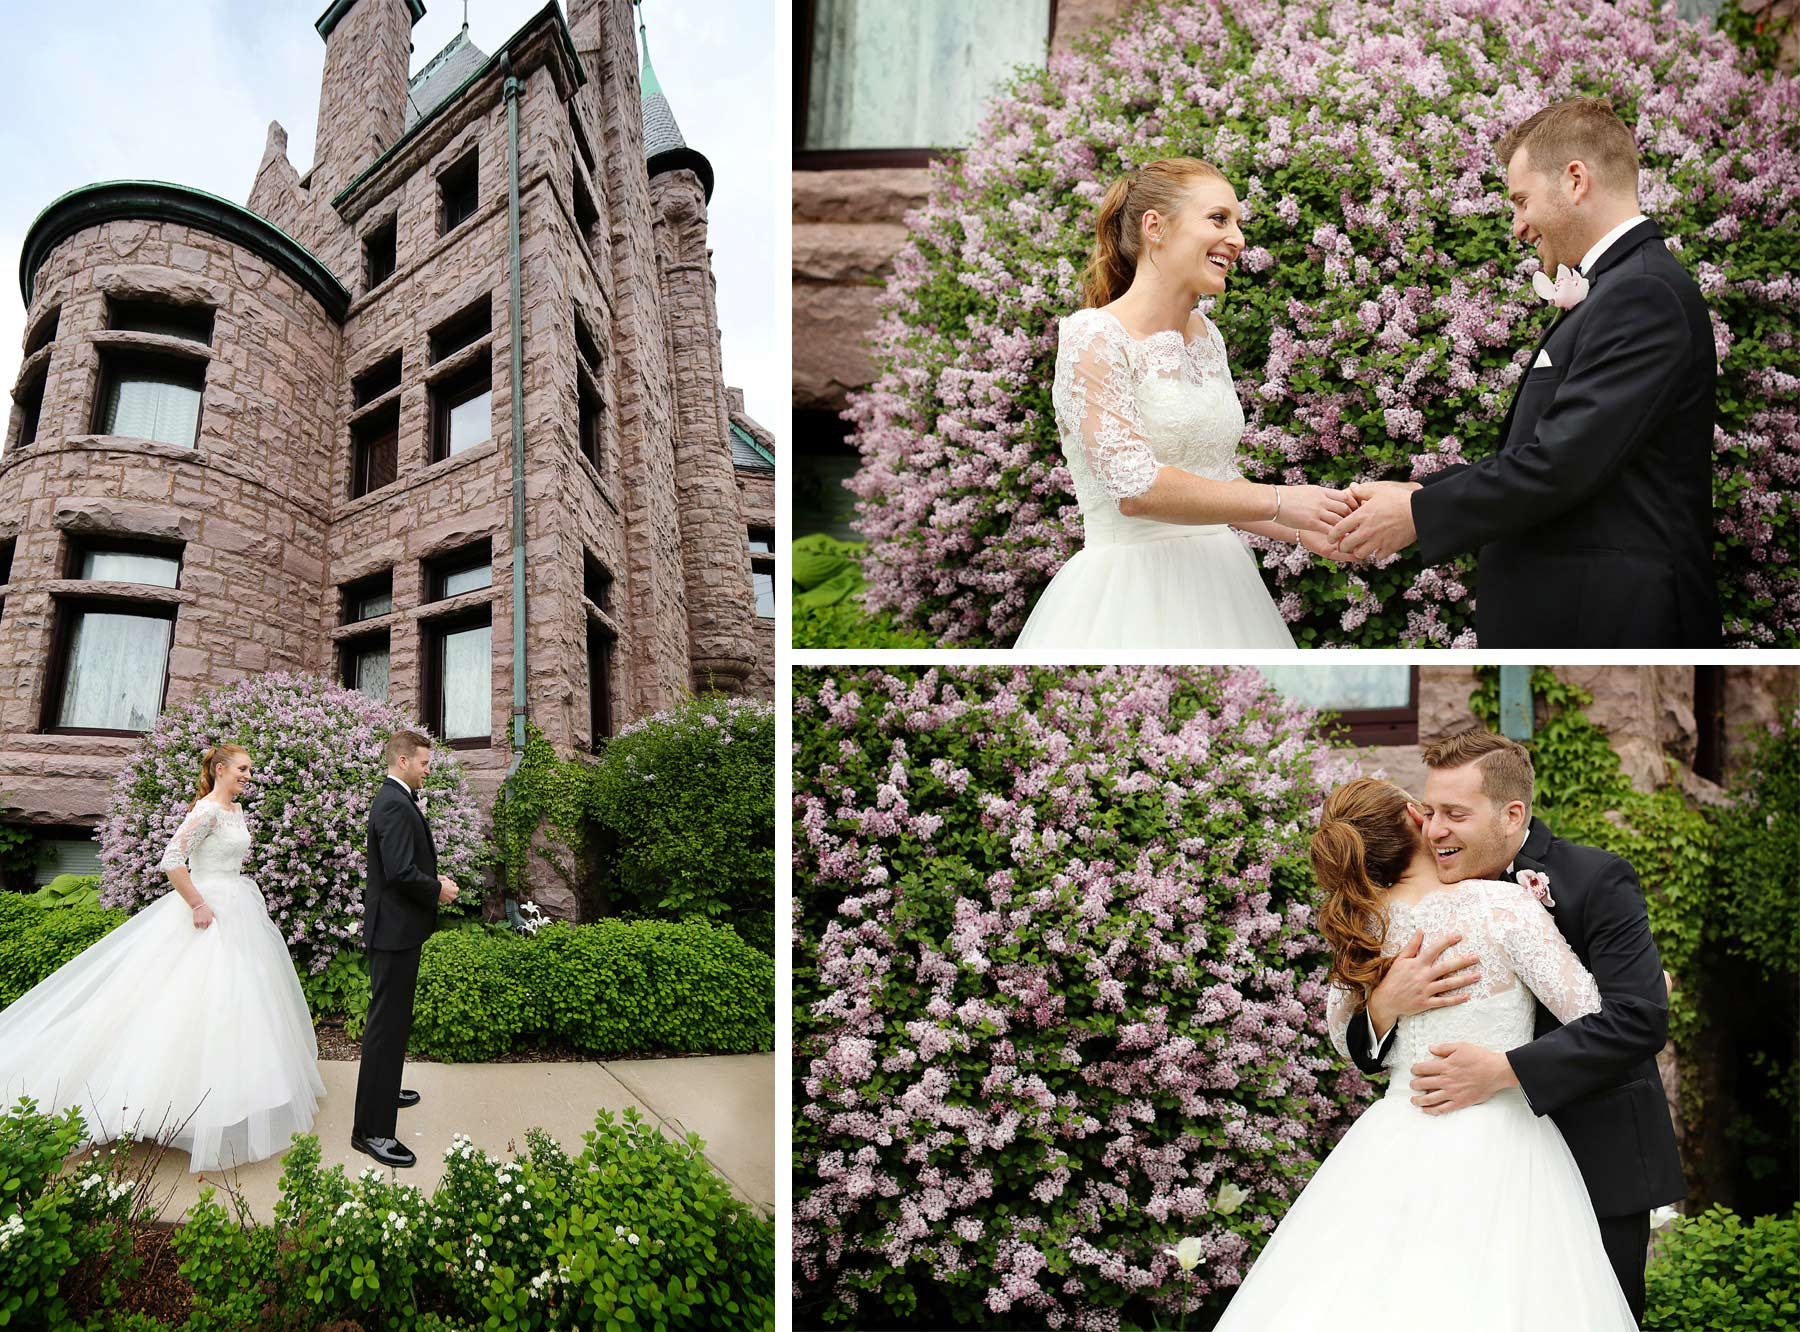 08-Minneapolis-Minnesota-Wedding-Photography-by-Vick-Photography--Van-Dusen-Mansion-First-Look.jpg